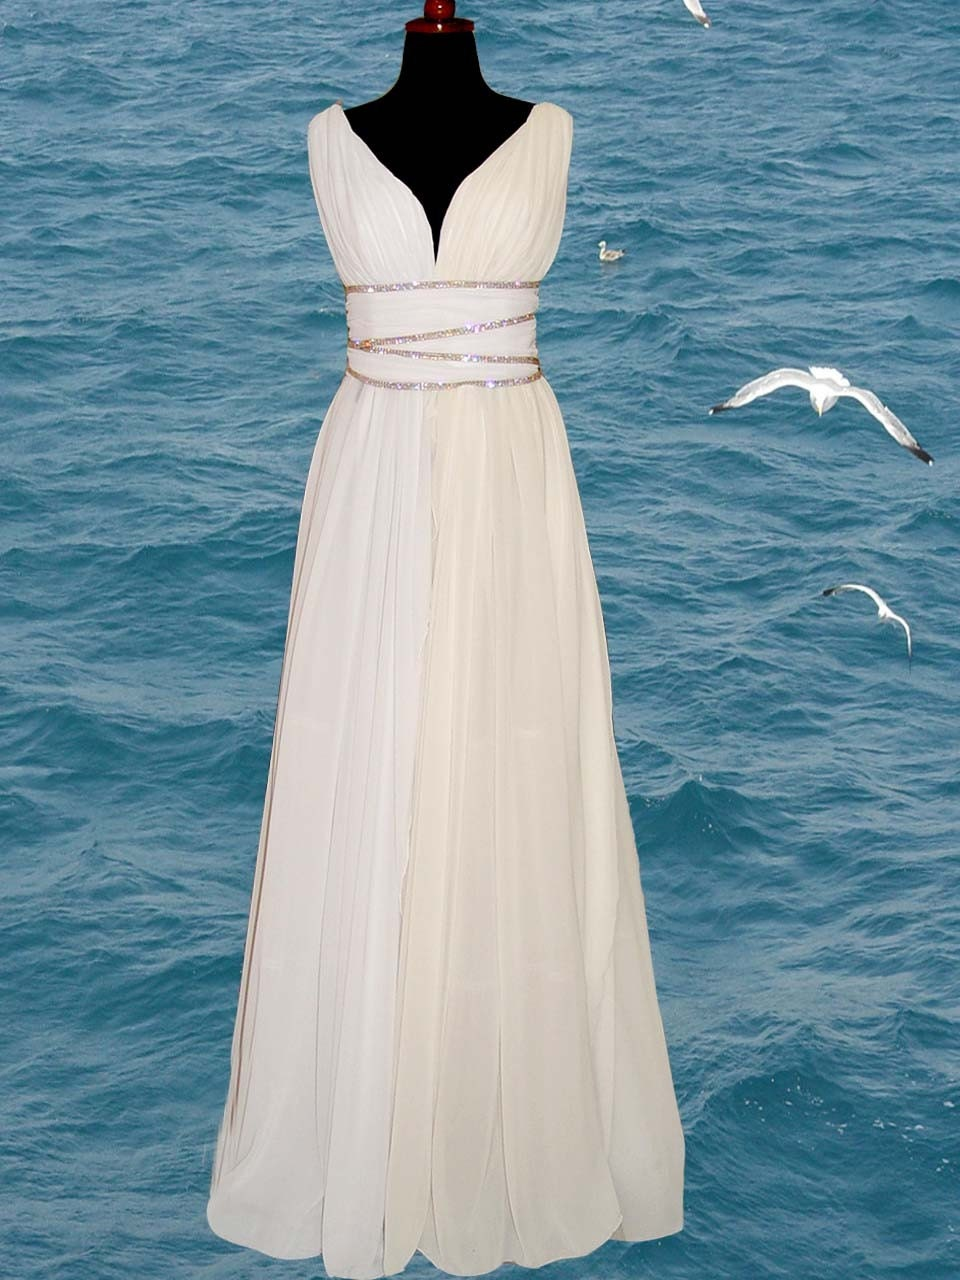 Grecian style wedding dresses wedding dresses 2013 for Dress of wedding style